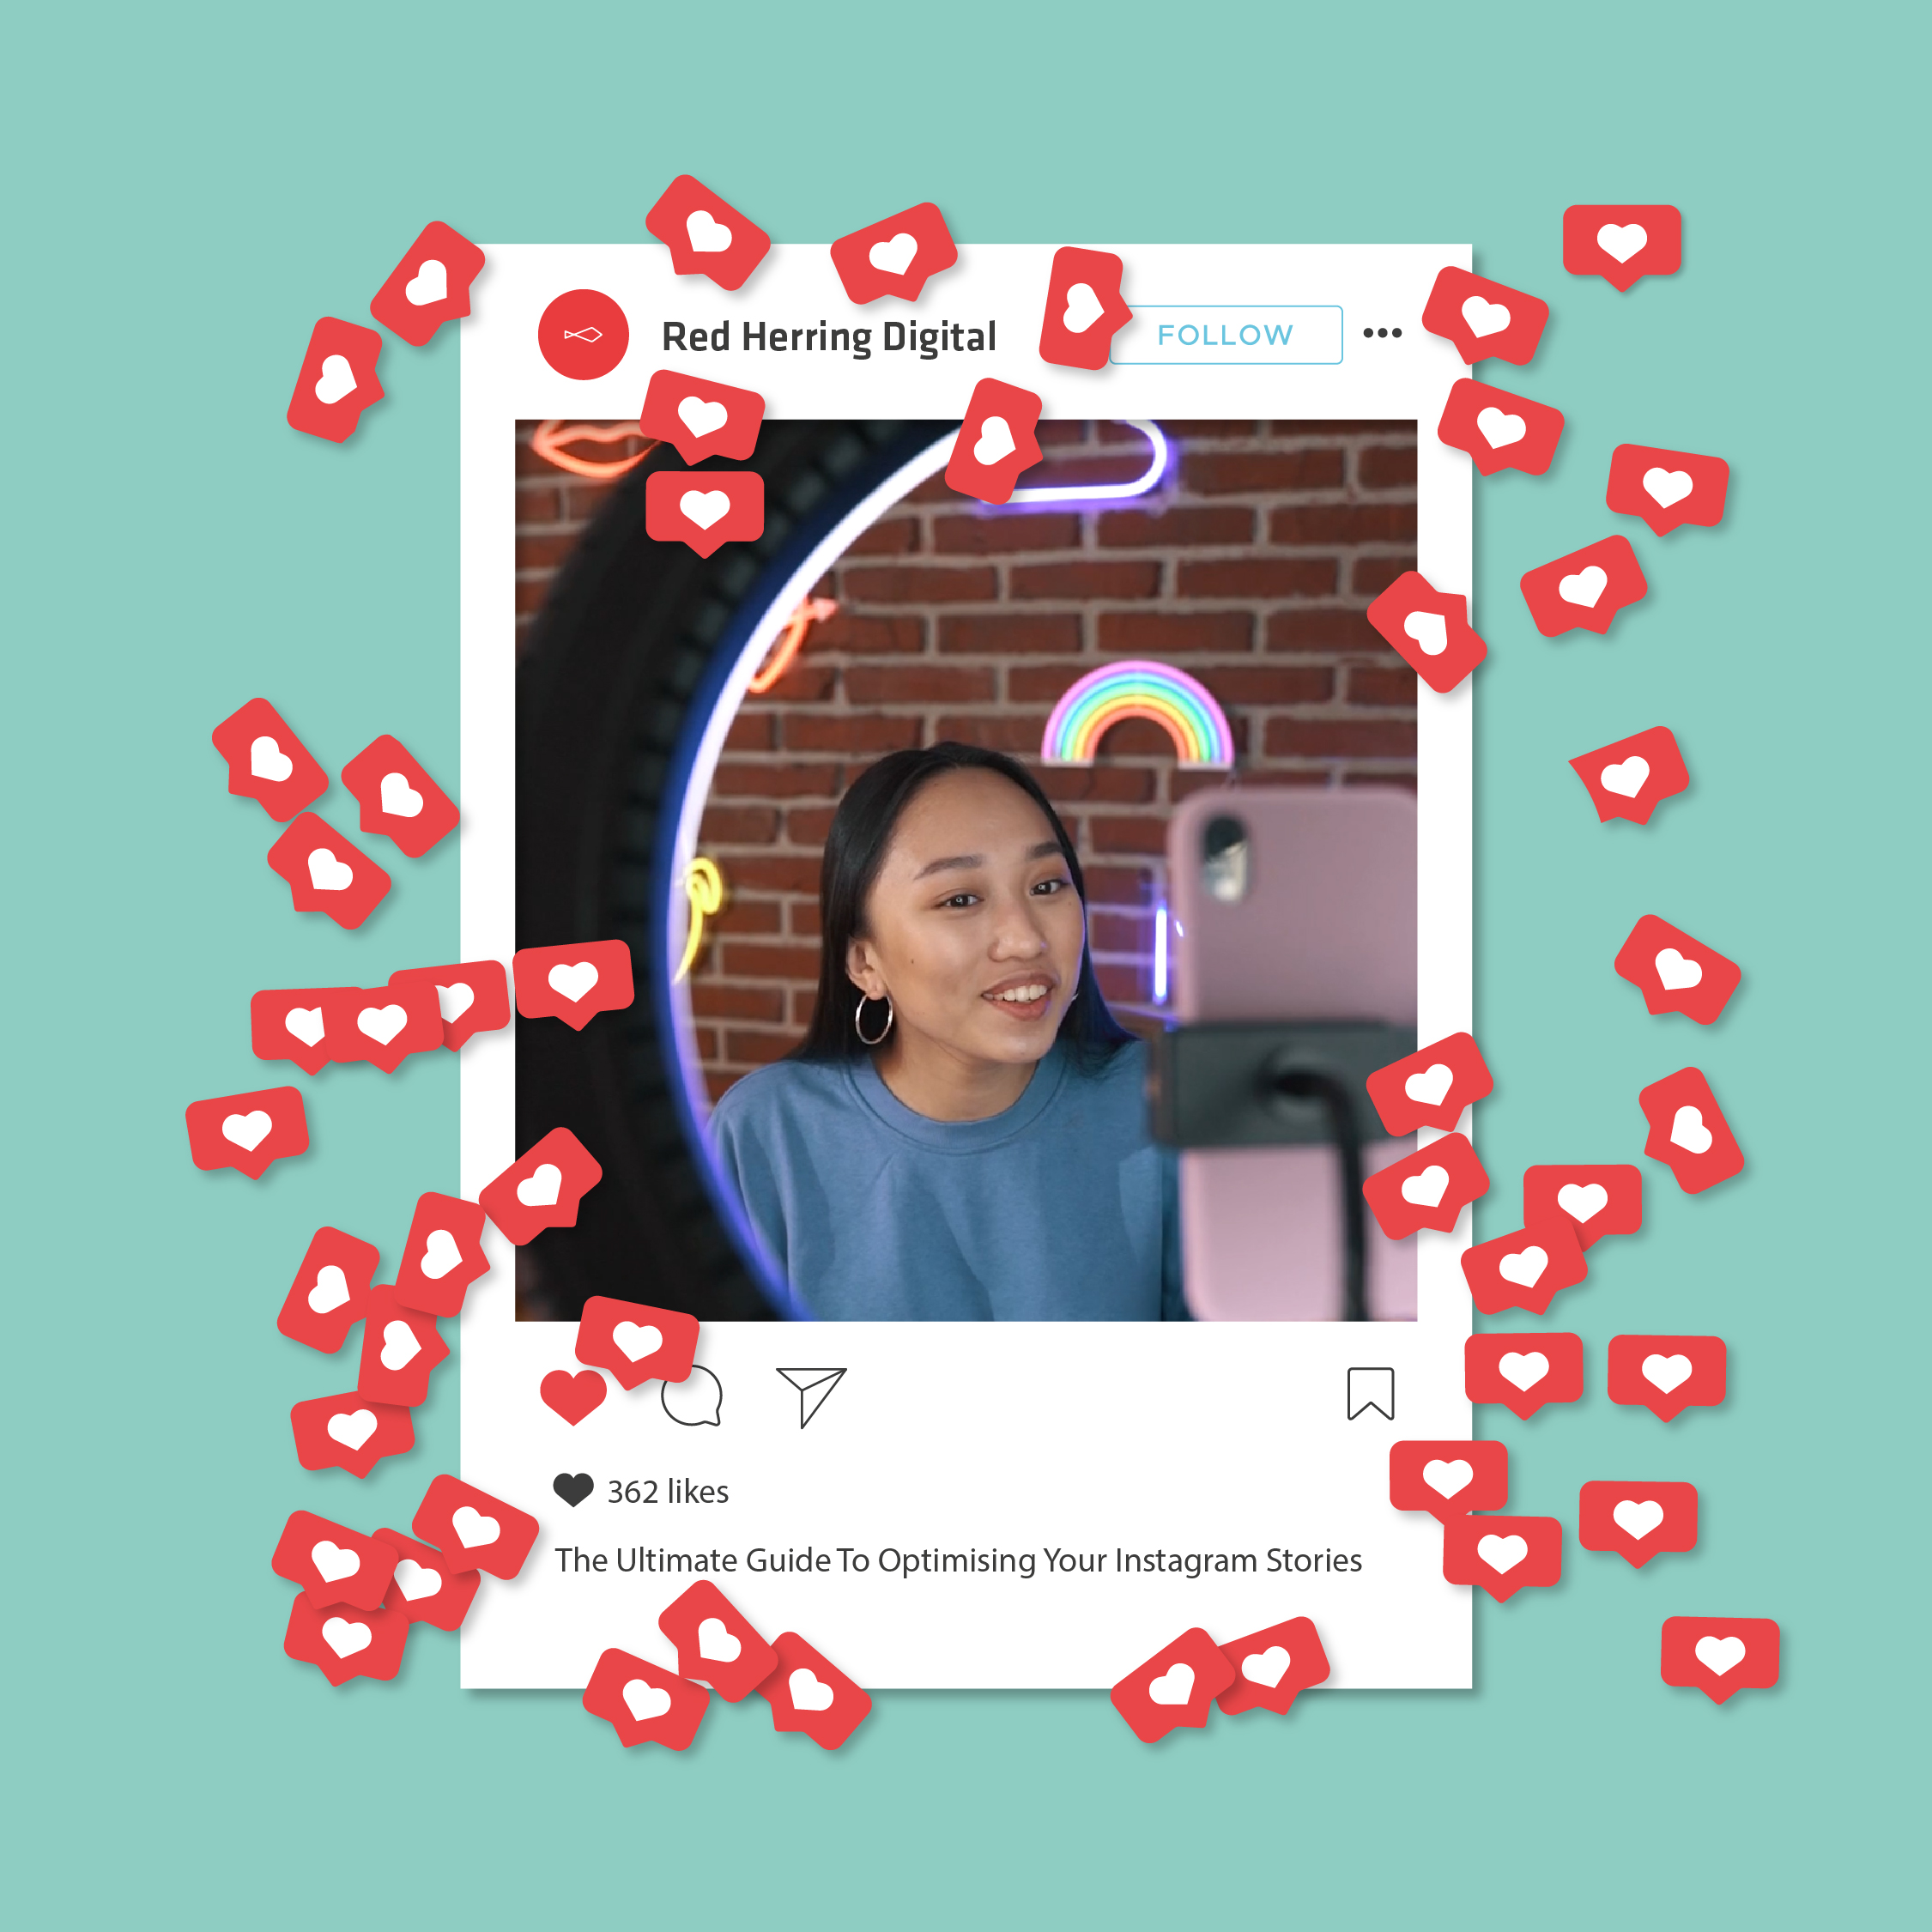 The Ultimate Guide To Optimising Your Instagram Stories